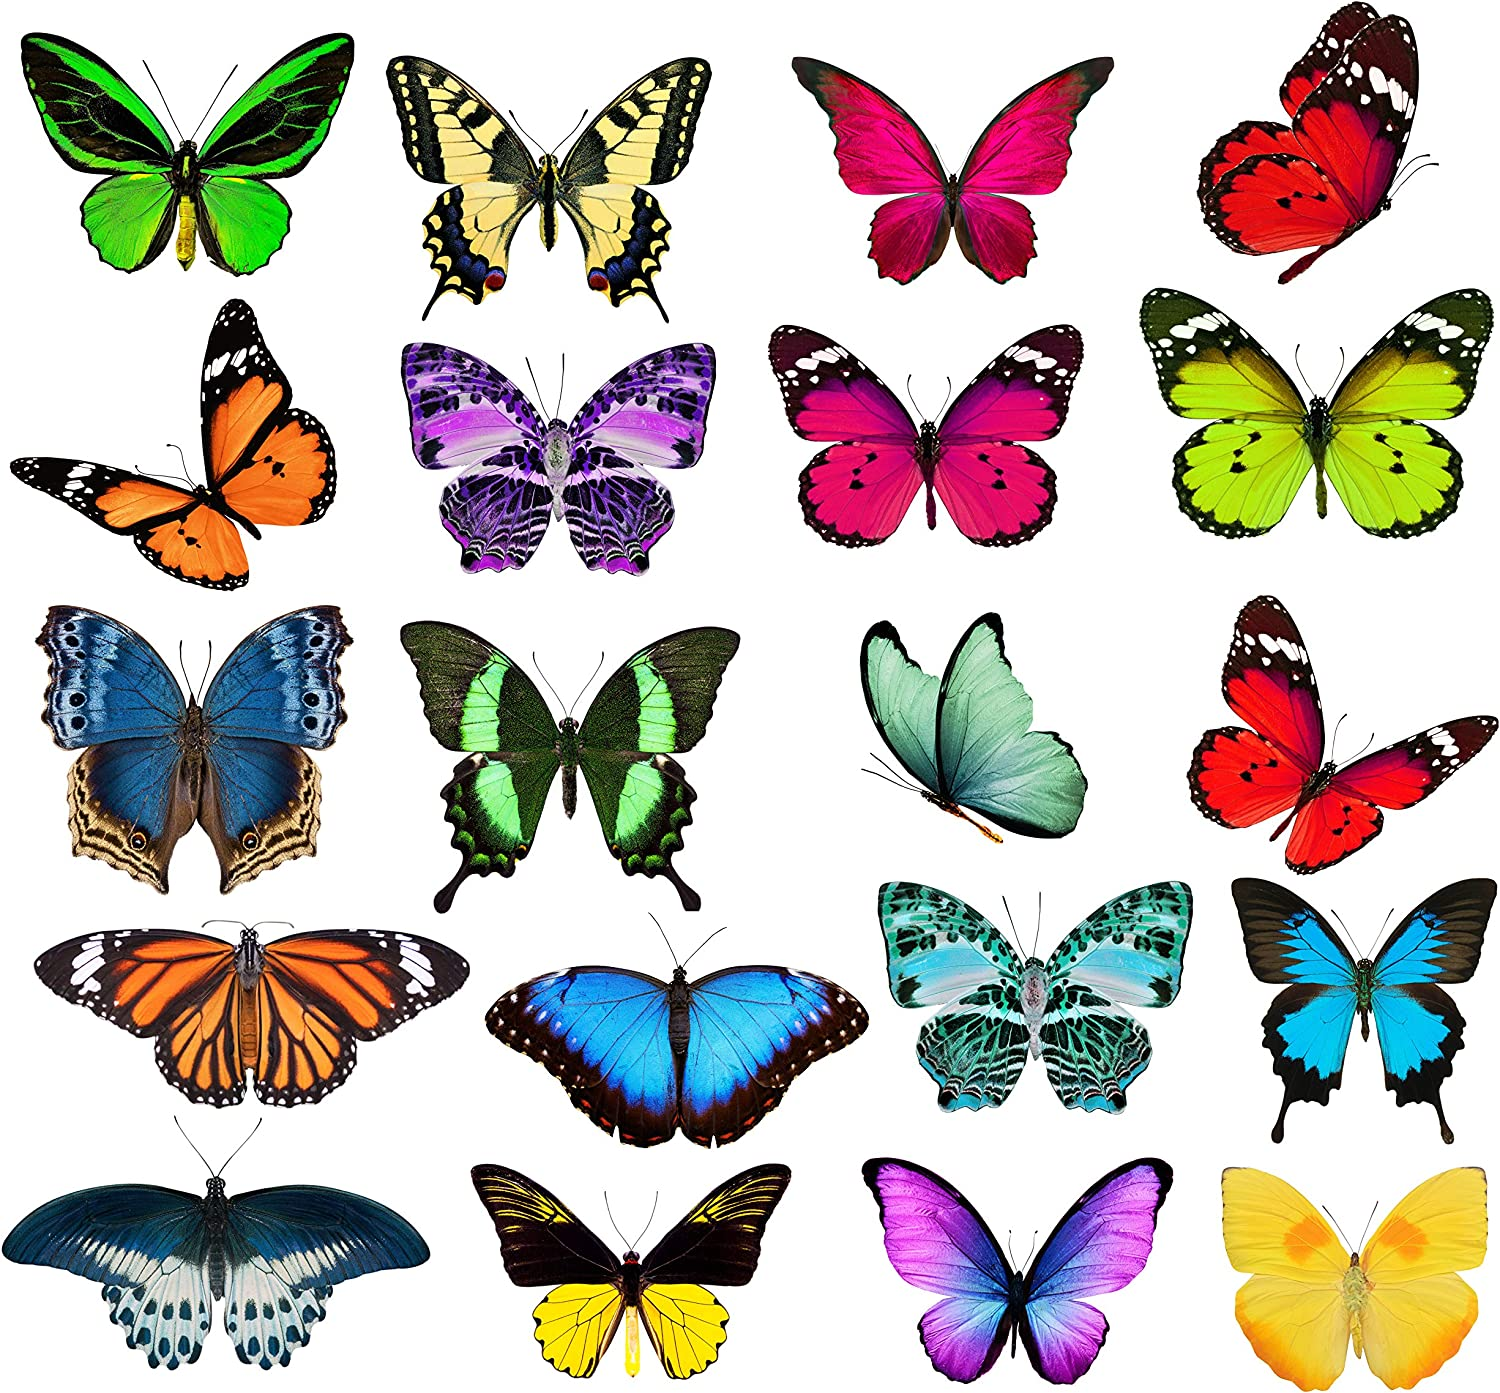 Butterfly Window Clings - 20 x Anti Collision Decals to Prevent Bird Strikes on Doors & Windows - Static, UV Resistant & Non Adhesive Vinyl Cling – Deterrent Decal & Glass Decor to Alert Birds